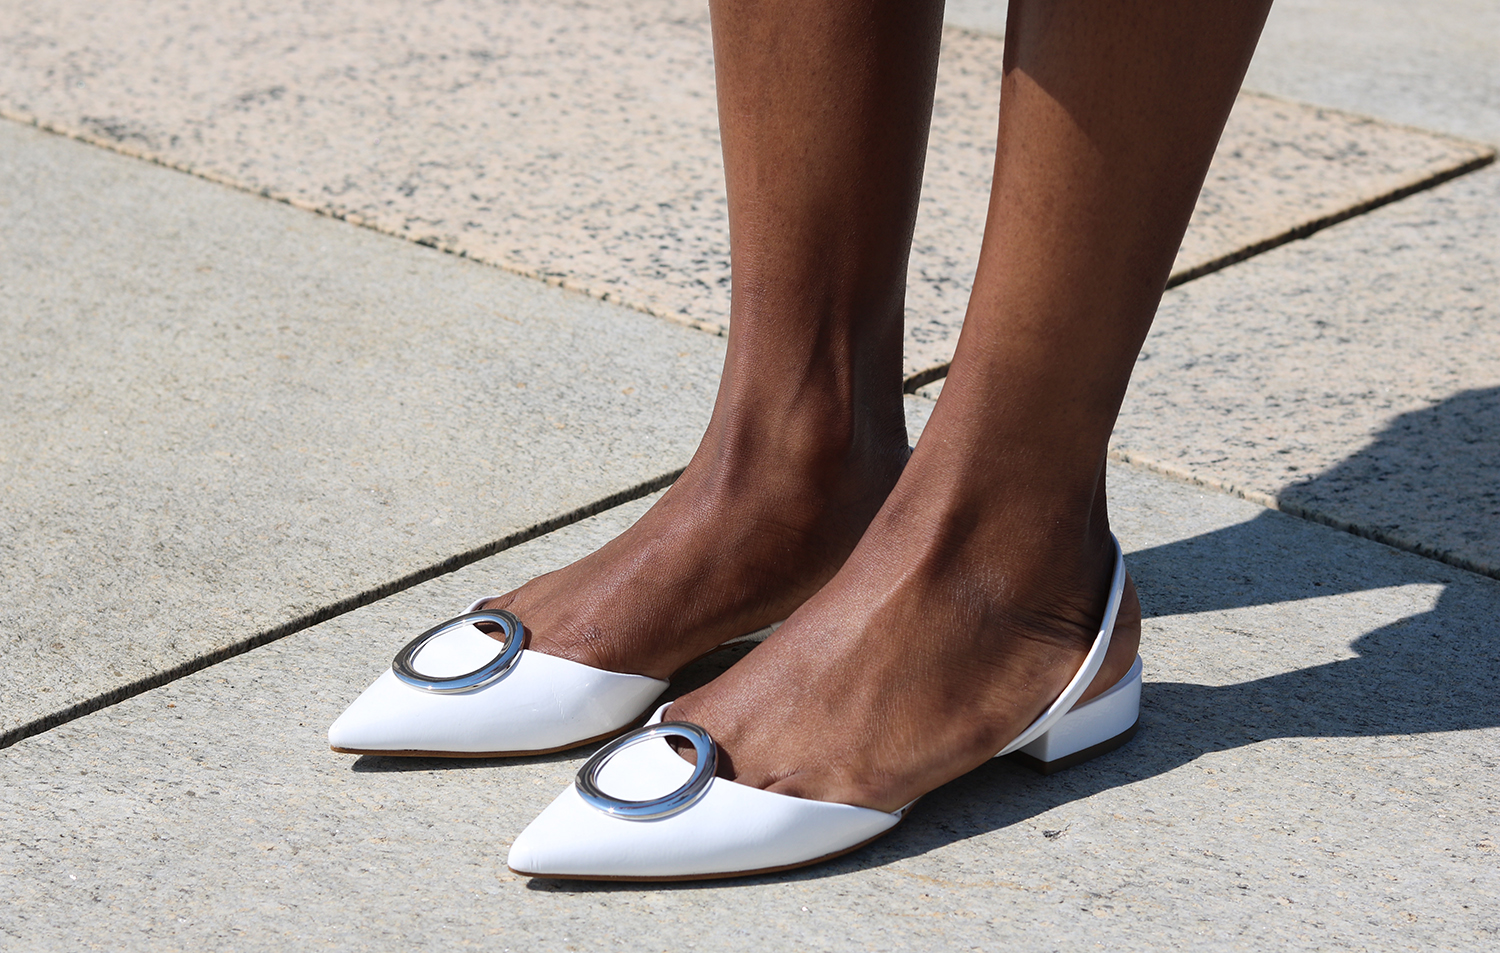 detailed flat shoes